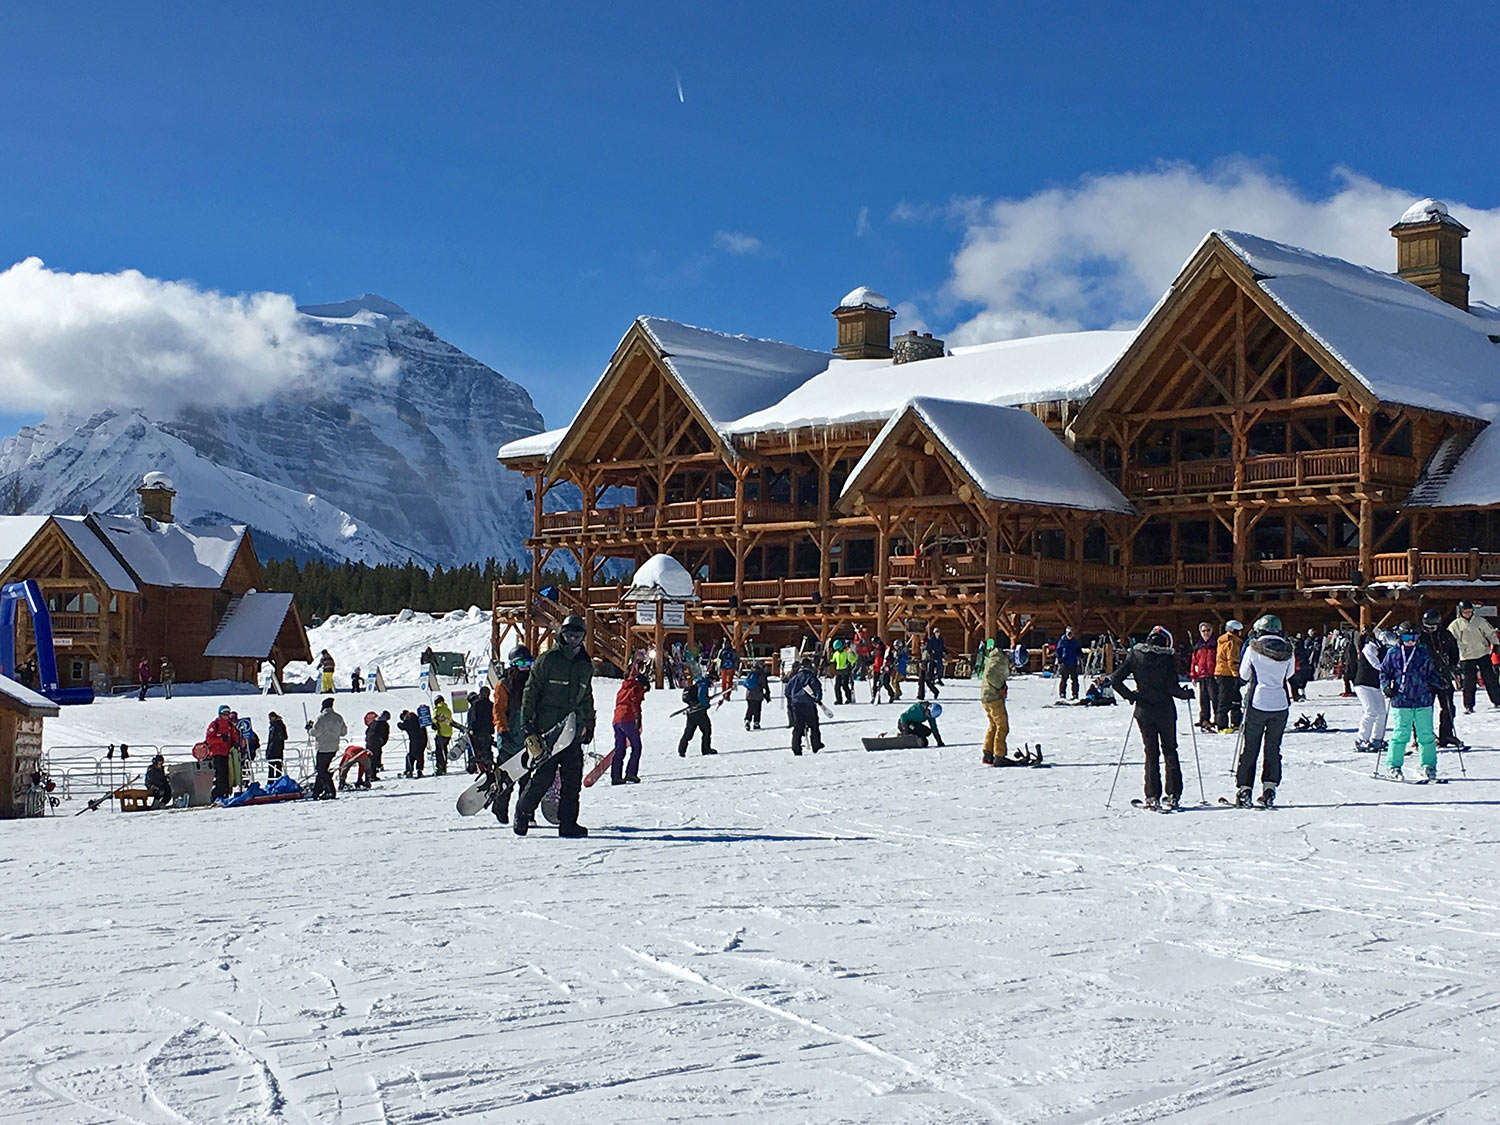 Lake Louise Ski Resort Lodge in winter with lots of skiers and boarders getting ready to go up lift